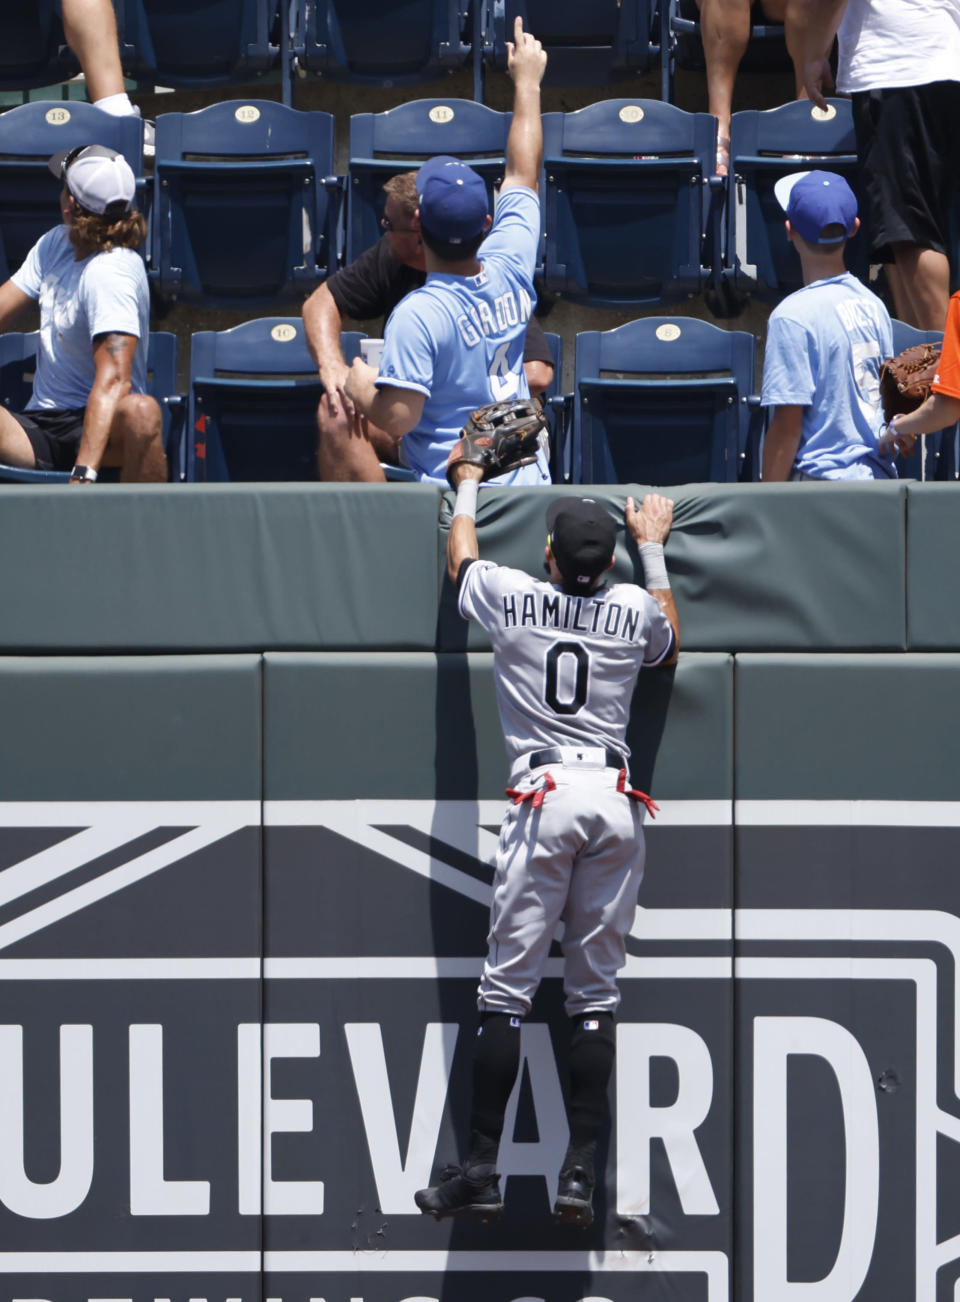 Chicago White Sox center fielder Billy Hamilton (0) jumps on to the wall to watch Kansas City Royals' Salvador Perez' two run home run during the first inning of a baseball game at Kauffman Stadium in Kansas City, Mo., Thursday, July 29, 2021. (AP Photo/Colin E. Braley)